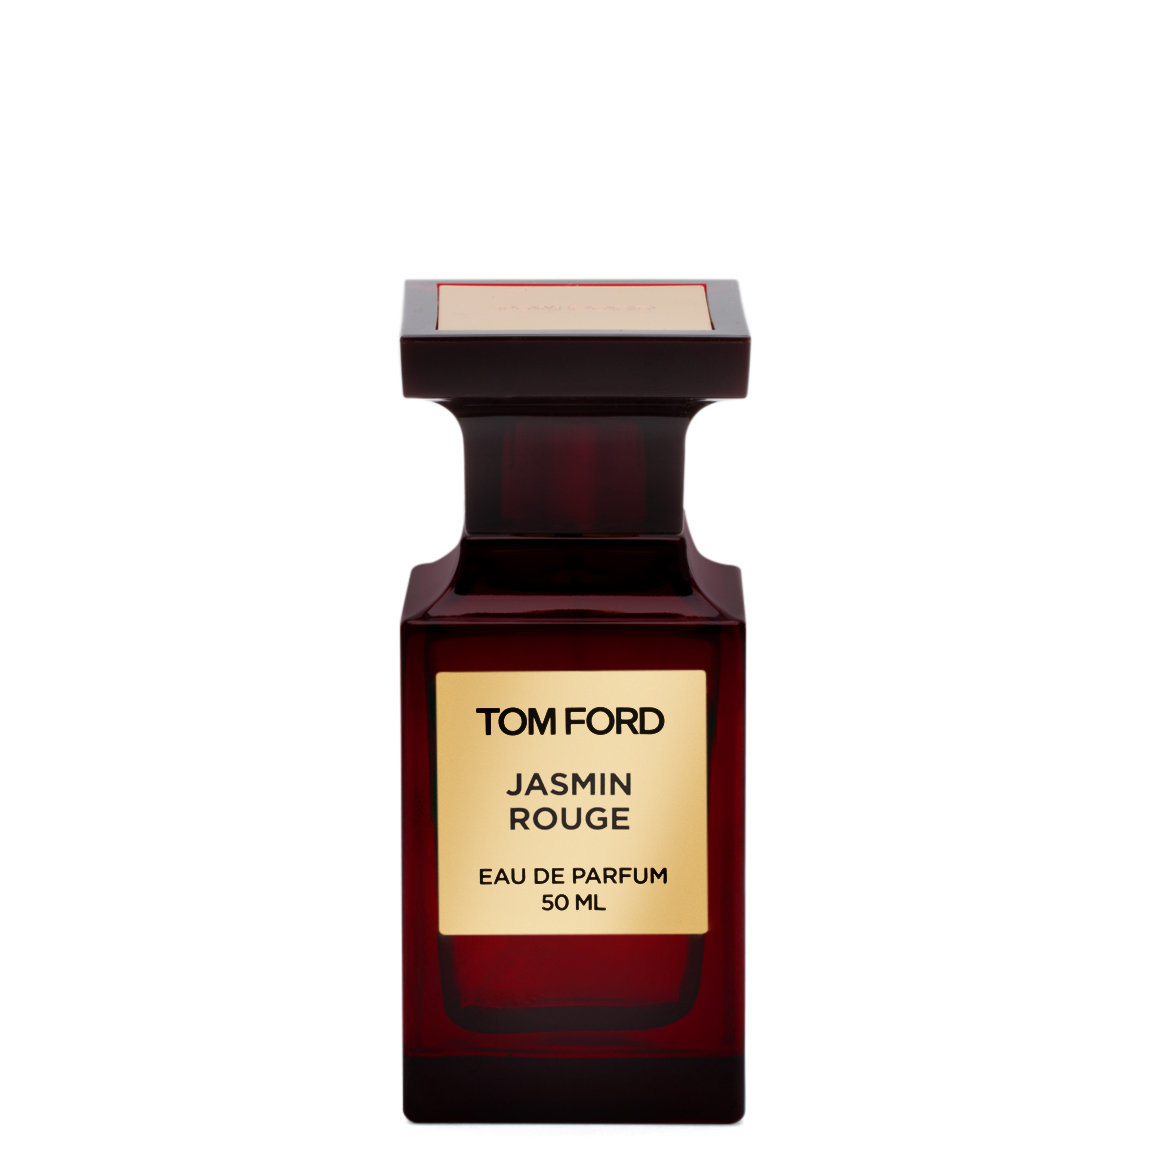 TOM FORD Jasmin Rouge 50 ml product smear.